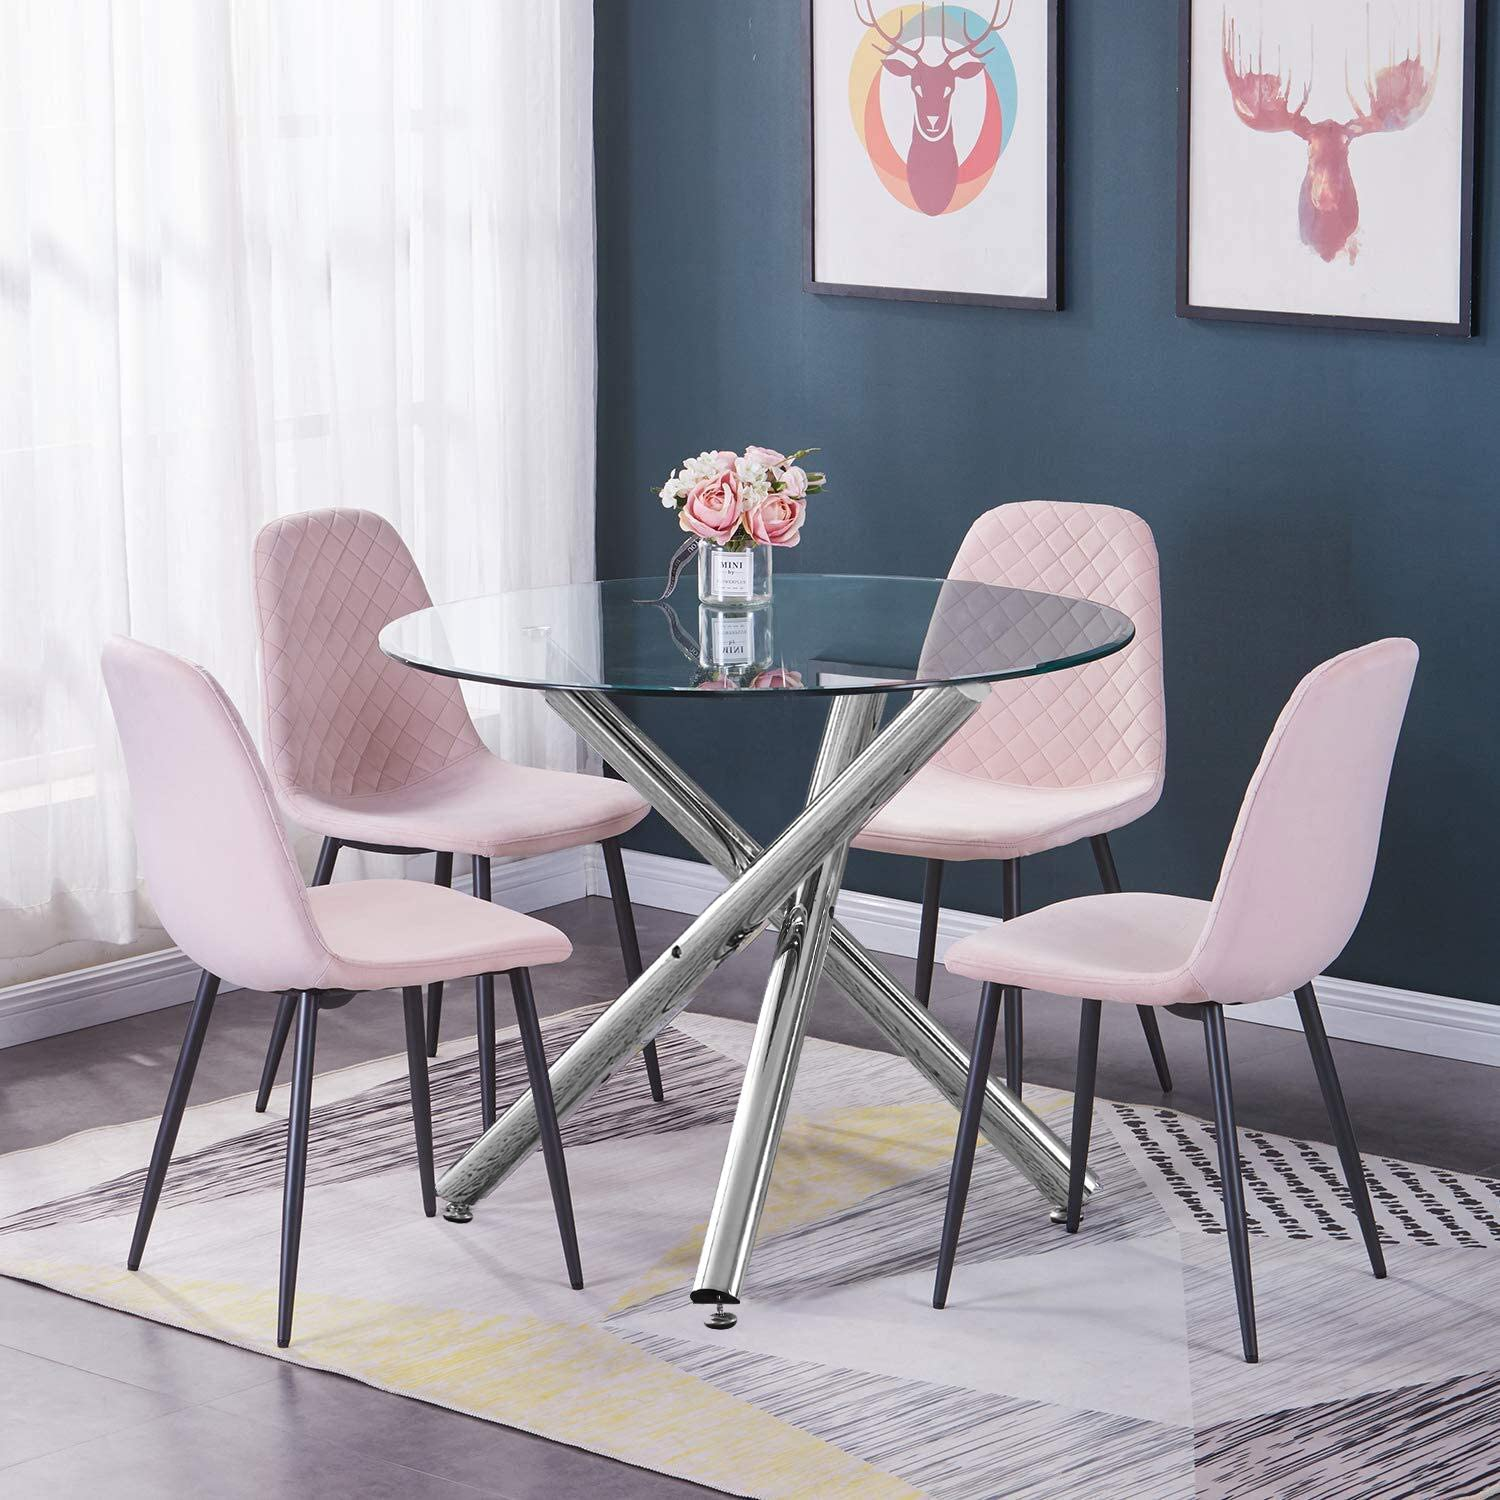 BOJU Round Glass Kitchen Dining Table and Chairs Set of 7 Pink Velvet  Upholstered Occasional Chairs and Clear Tempered Glass Table Conversational